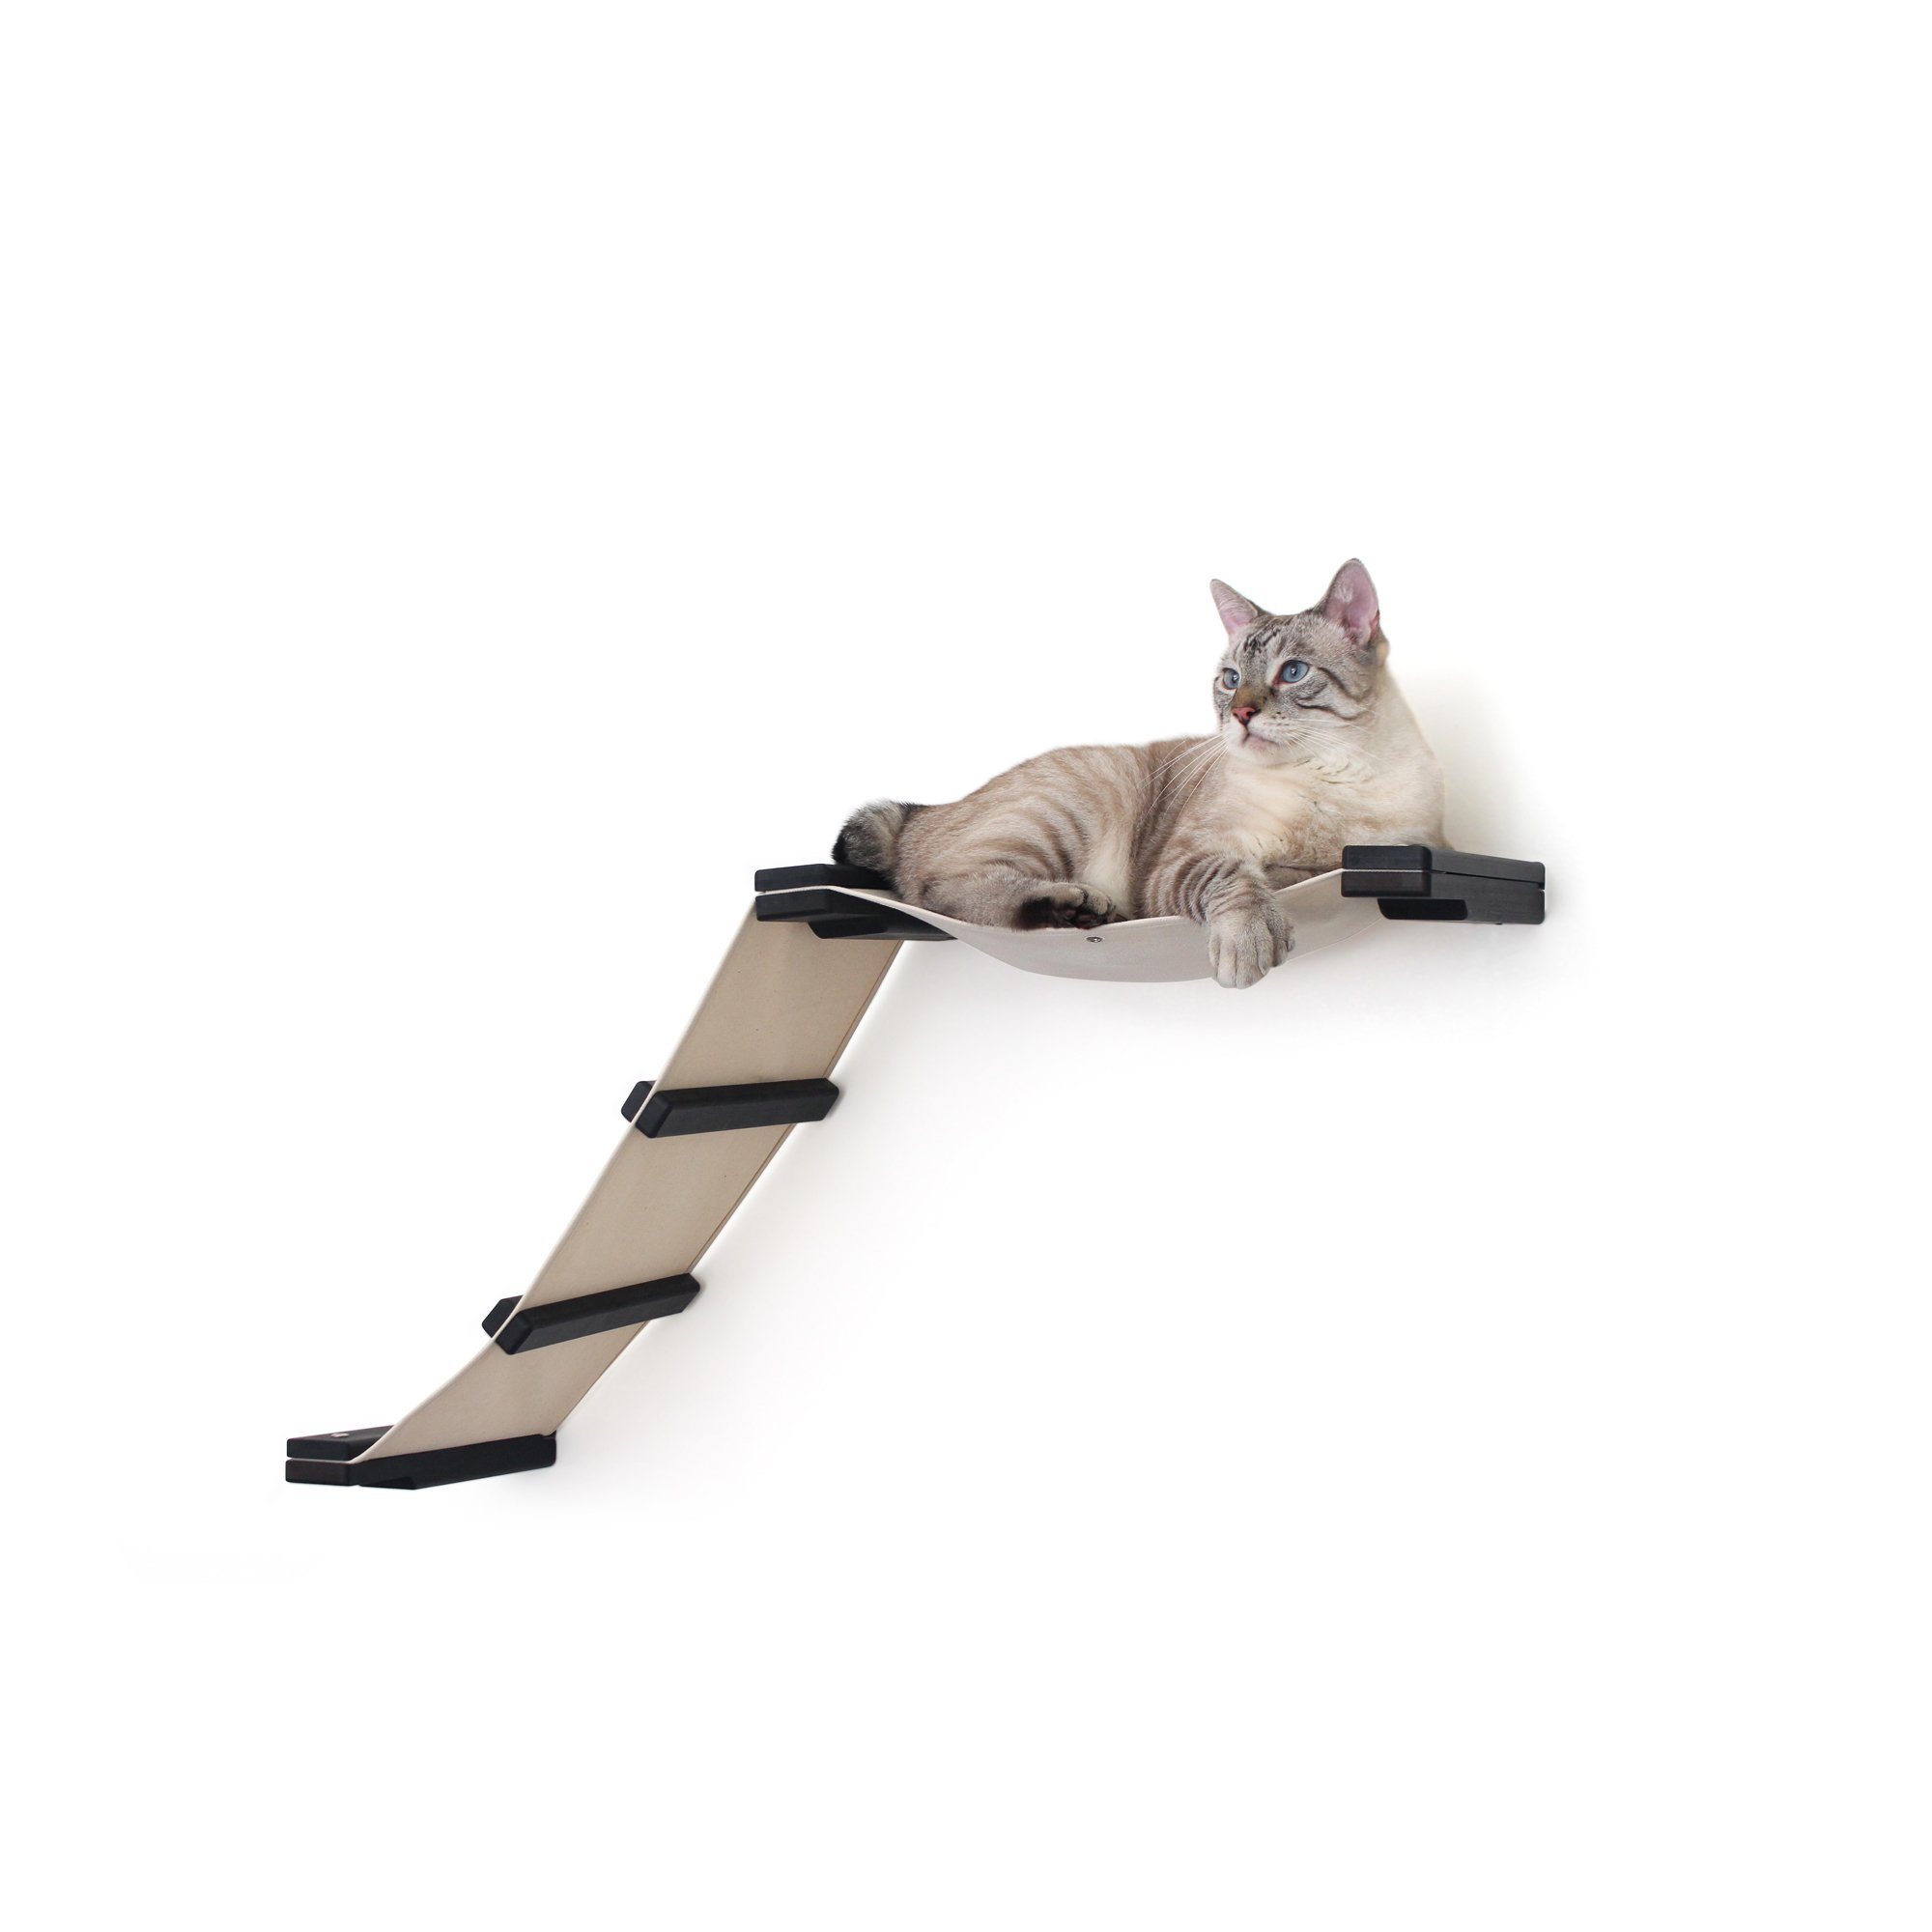 Catastrophicreations The Cat Mod Lift Hammocks For Cats In Onyx, 34 In W X 20 In H, 8 Lb